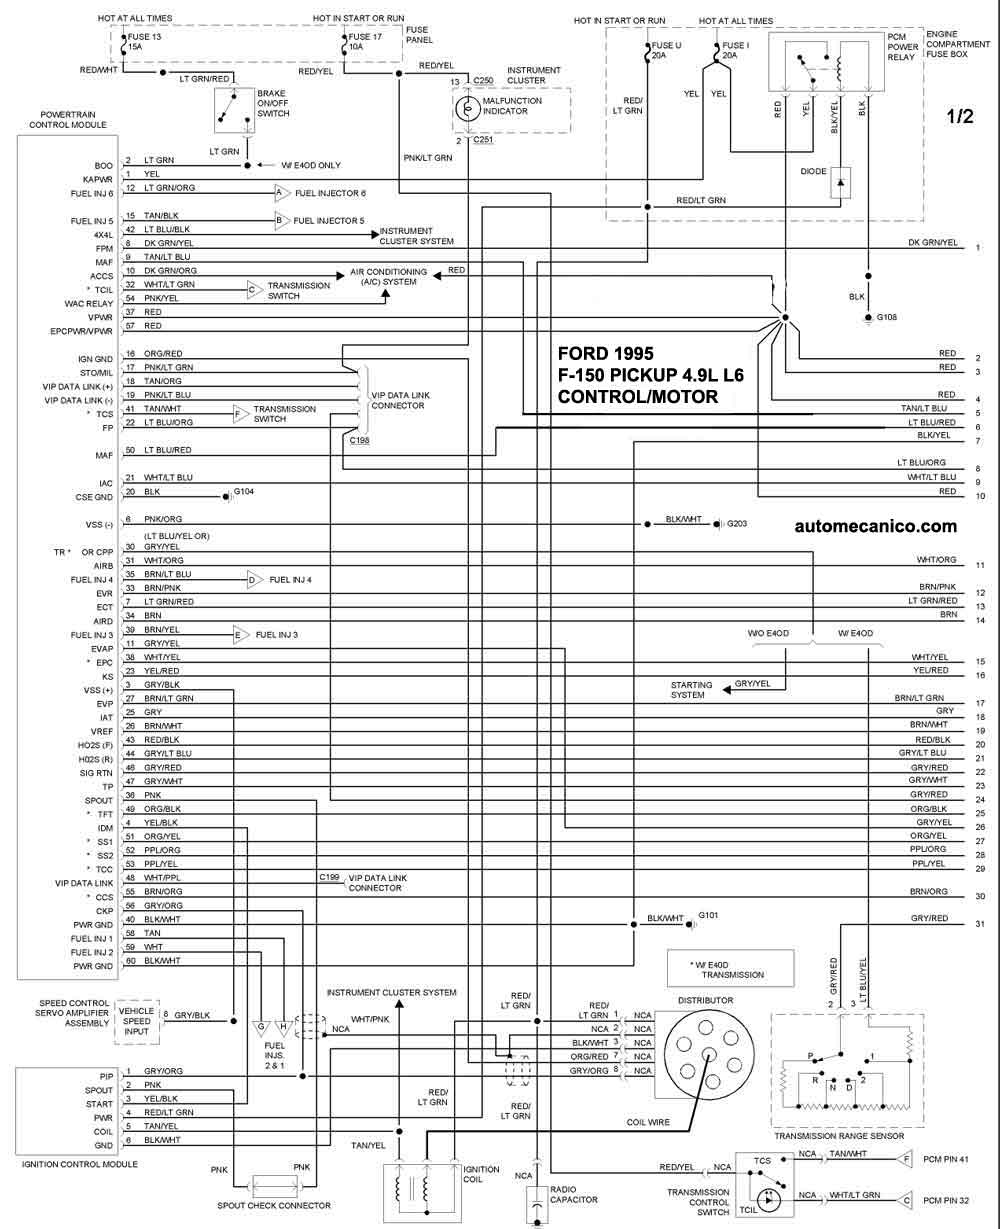 diagrama de cableado for 1994 ford f 150